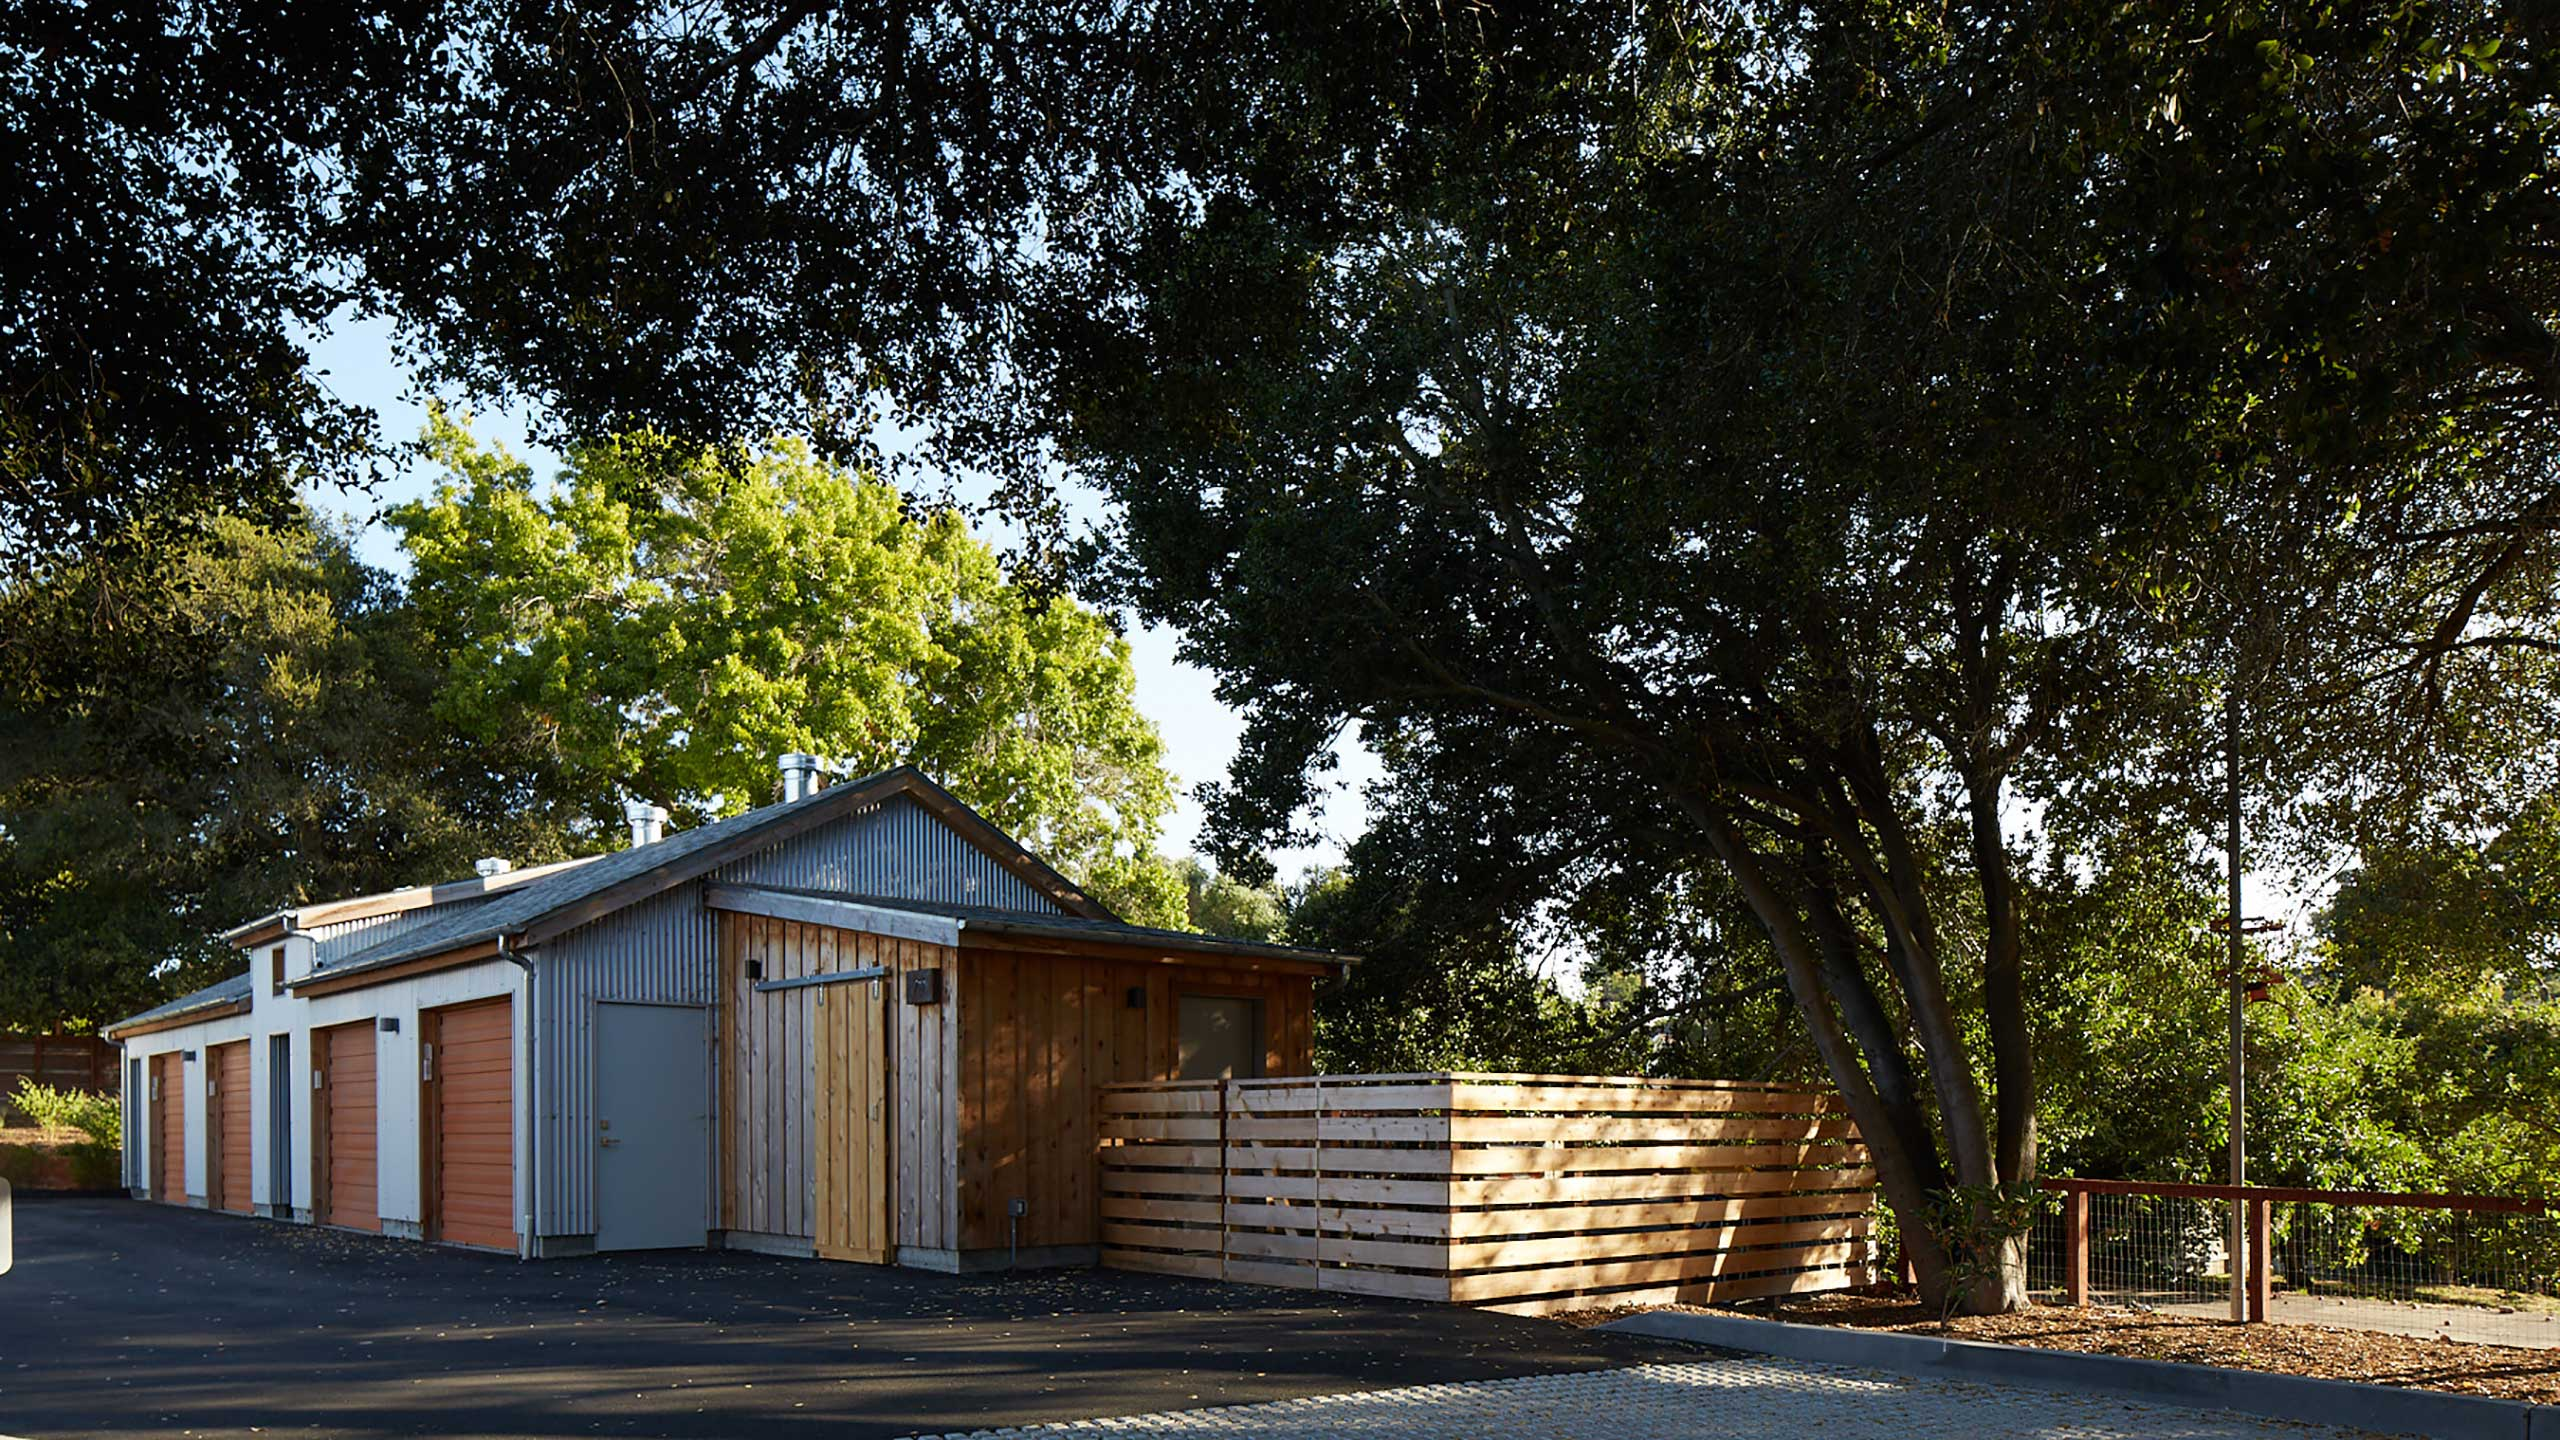 Sustainable-Architecture-Sonoma-County-Keller-Court-garages-with-corrugated-metal-siding